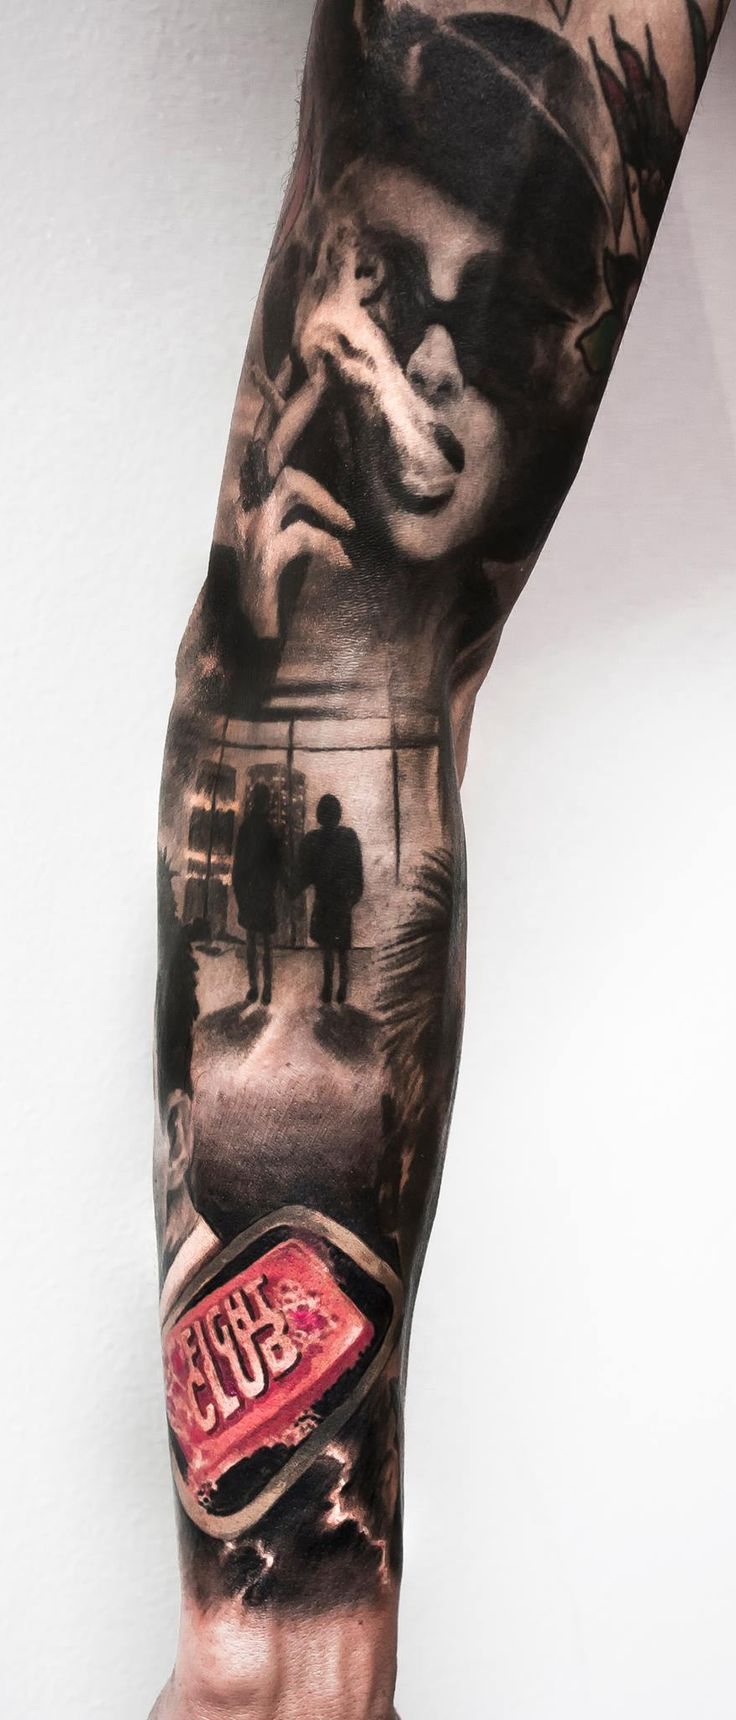 Fight Club tattoo by Paolo Murtas